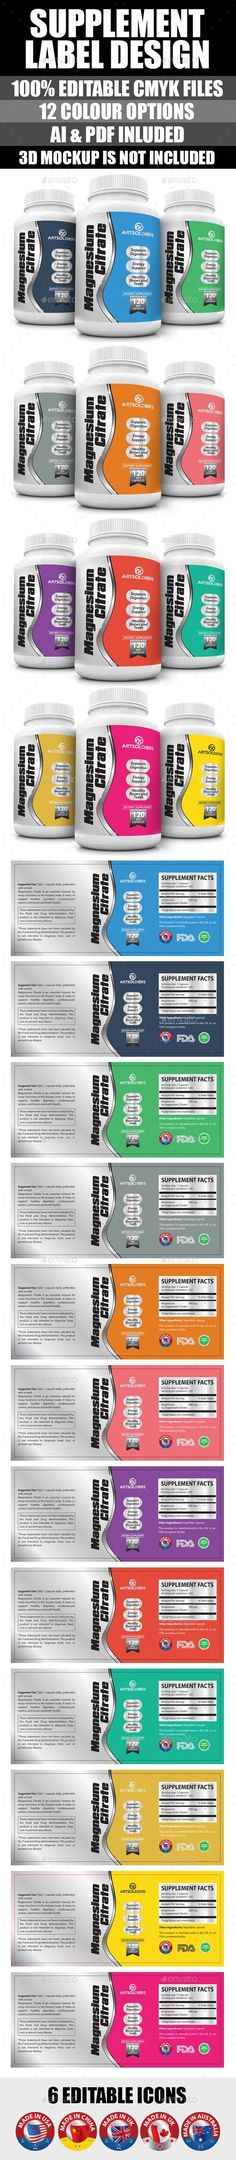 Supplement Label Template Vector AI. Download here: http://graphicriver.net/item/supplement-label/15466925?ref=ksioks